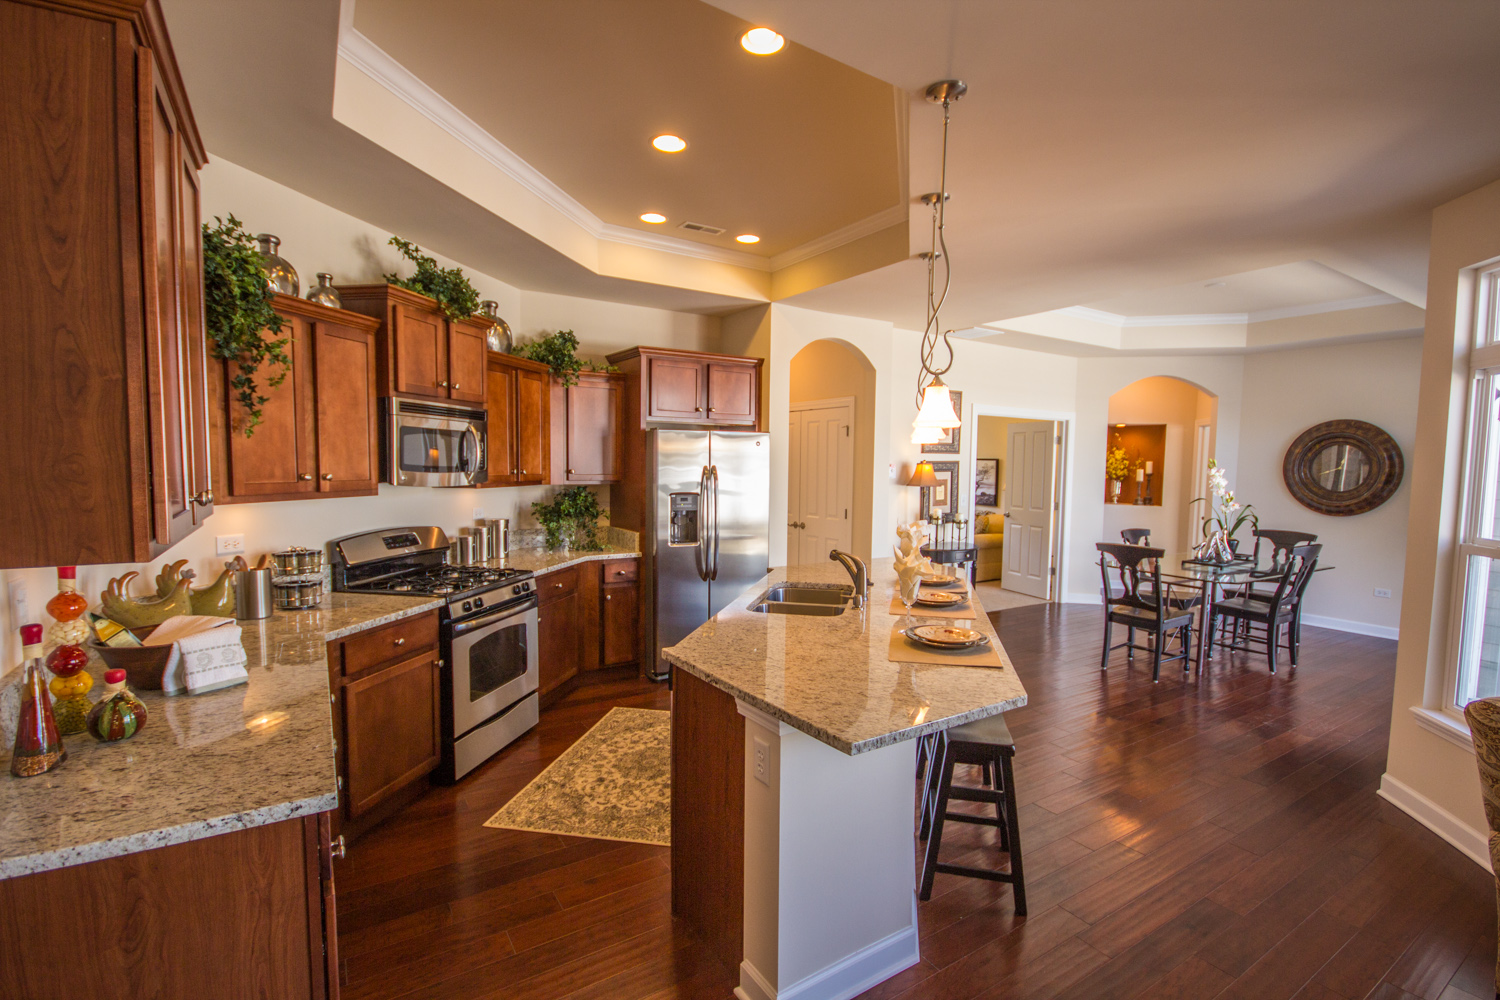 The extravagant gourmet kitchen features a spacious island perfect for entertaining